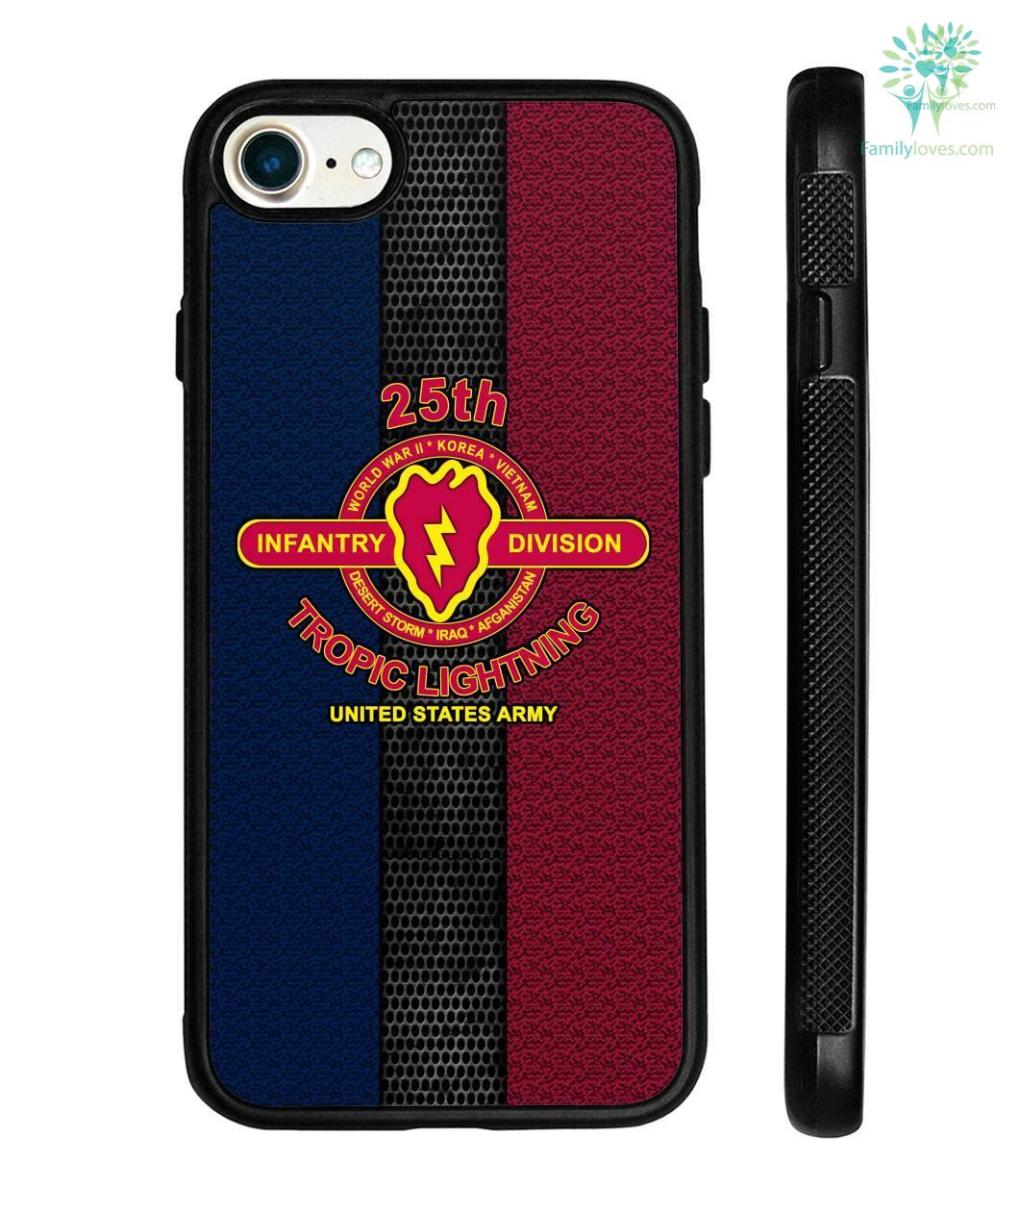 25th-infantry-division_9434fcd1-5974-f4f9-69a4-c07dcf55c7ab 25th Infantry Division tropic lightning United States Army? iPhone cases  %tag